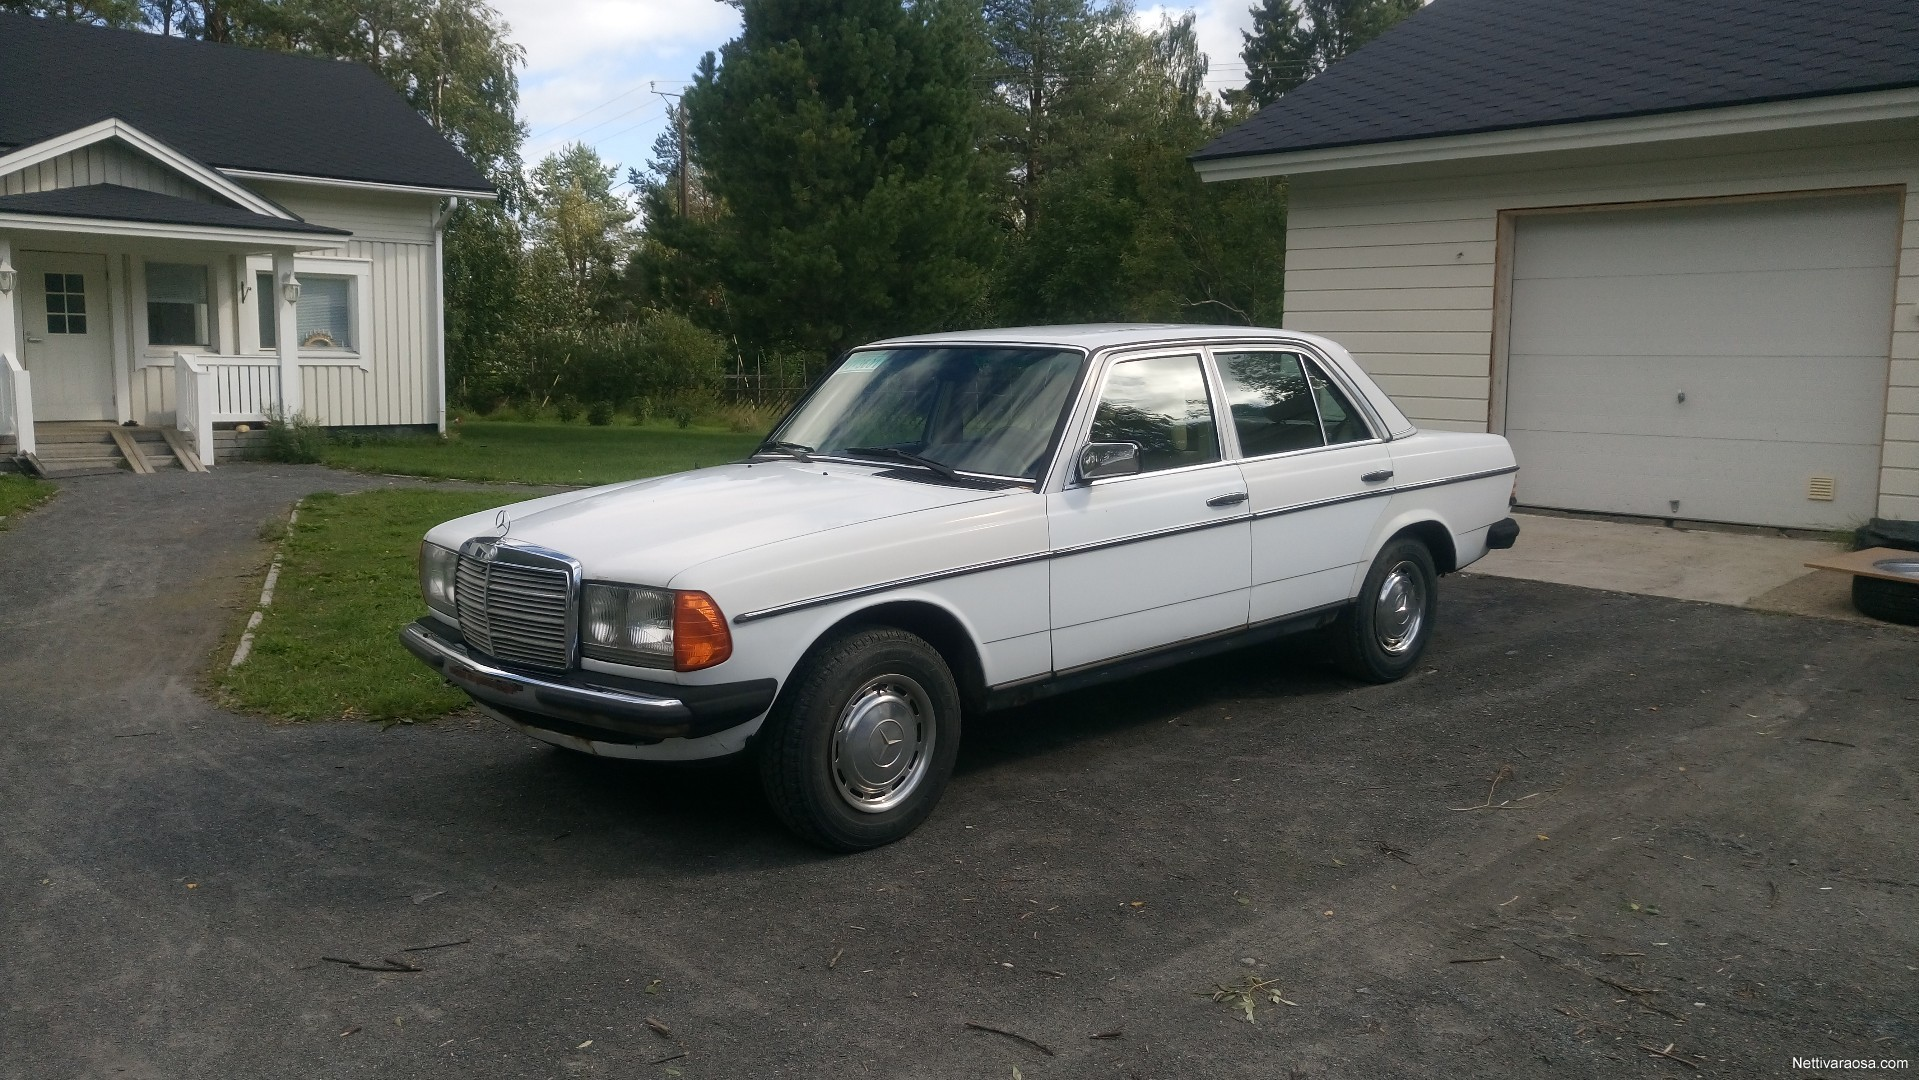 Nettivaraosa Mercedes Benz W123 300d Spare And Crash Cars